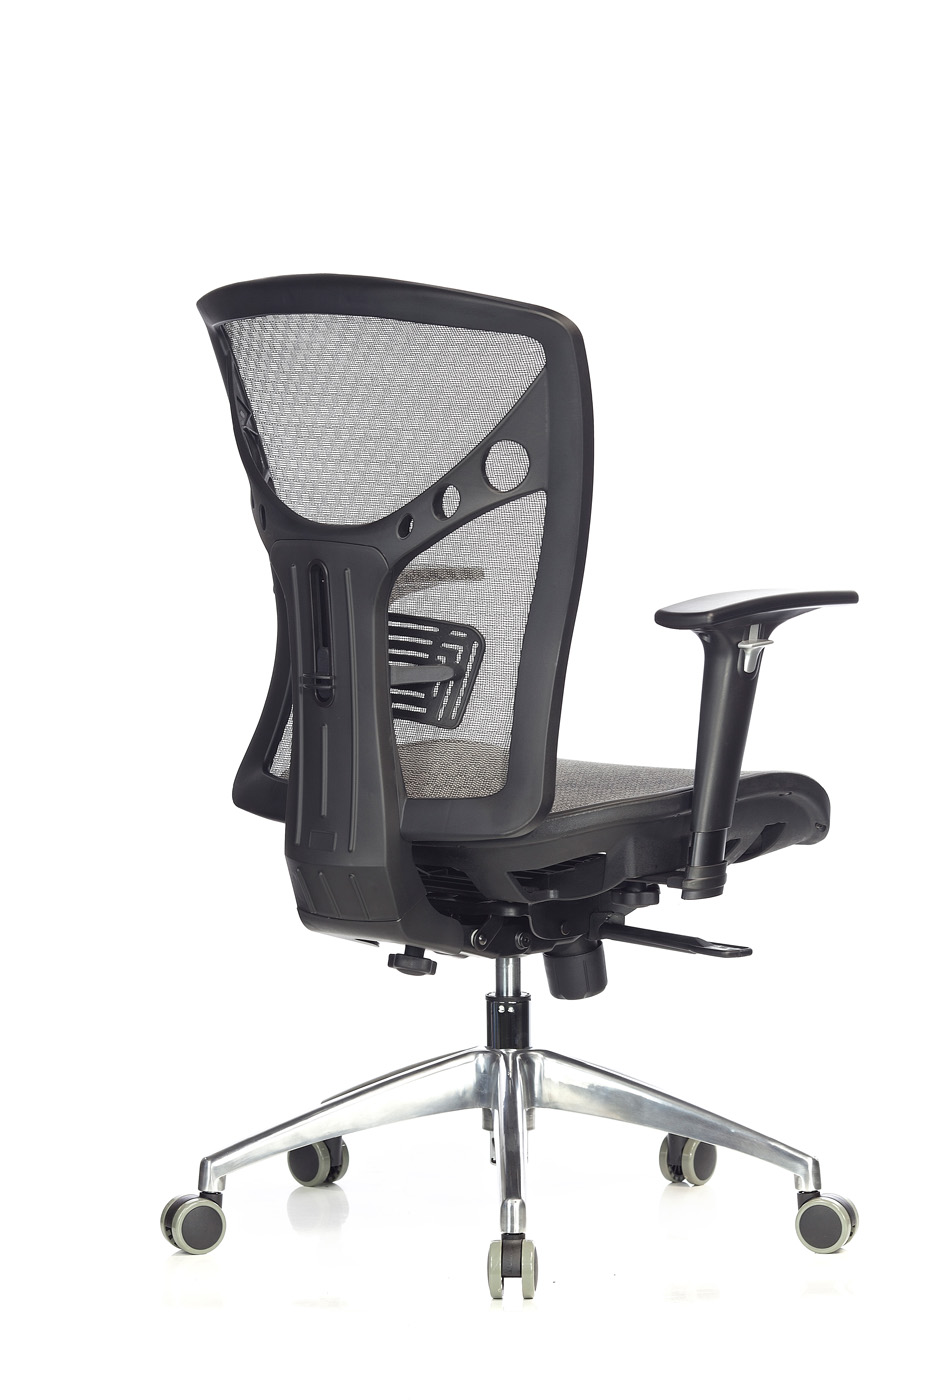 Selling Y-40MA office chair